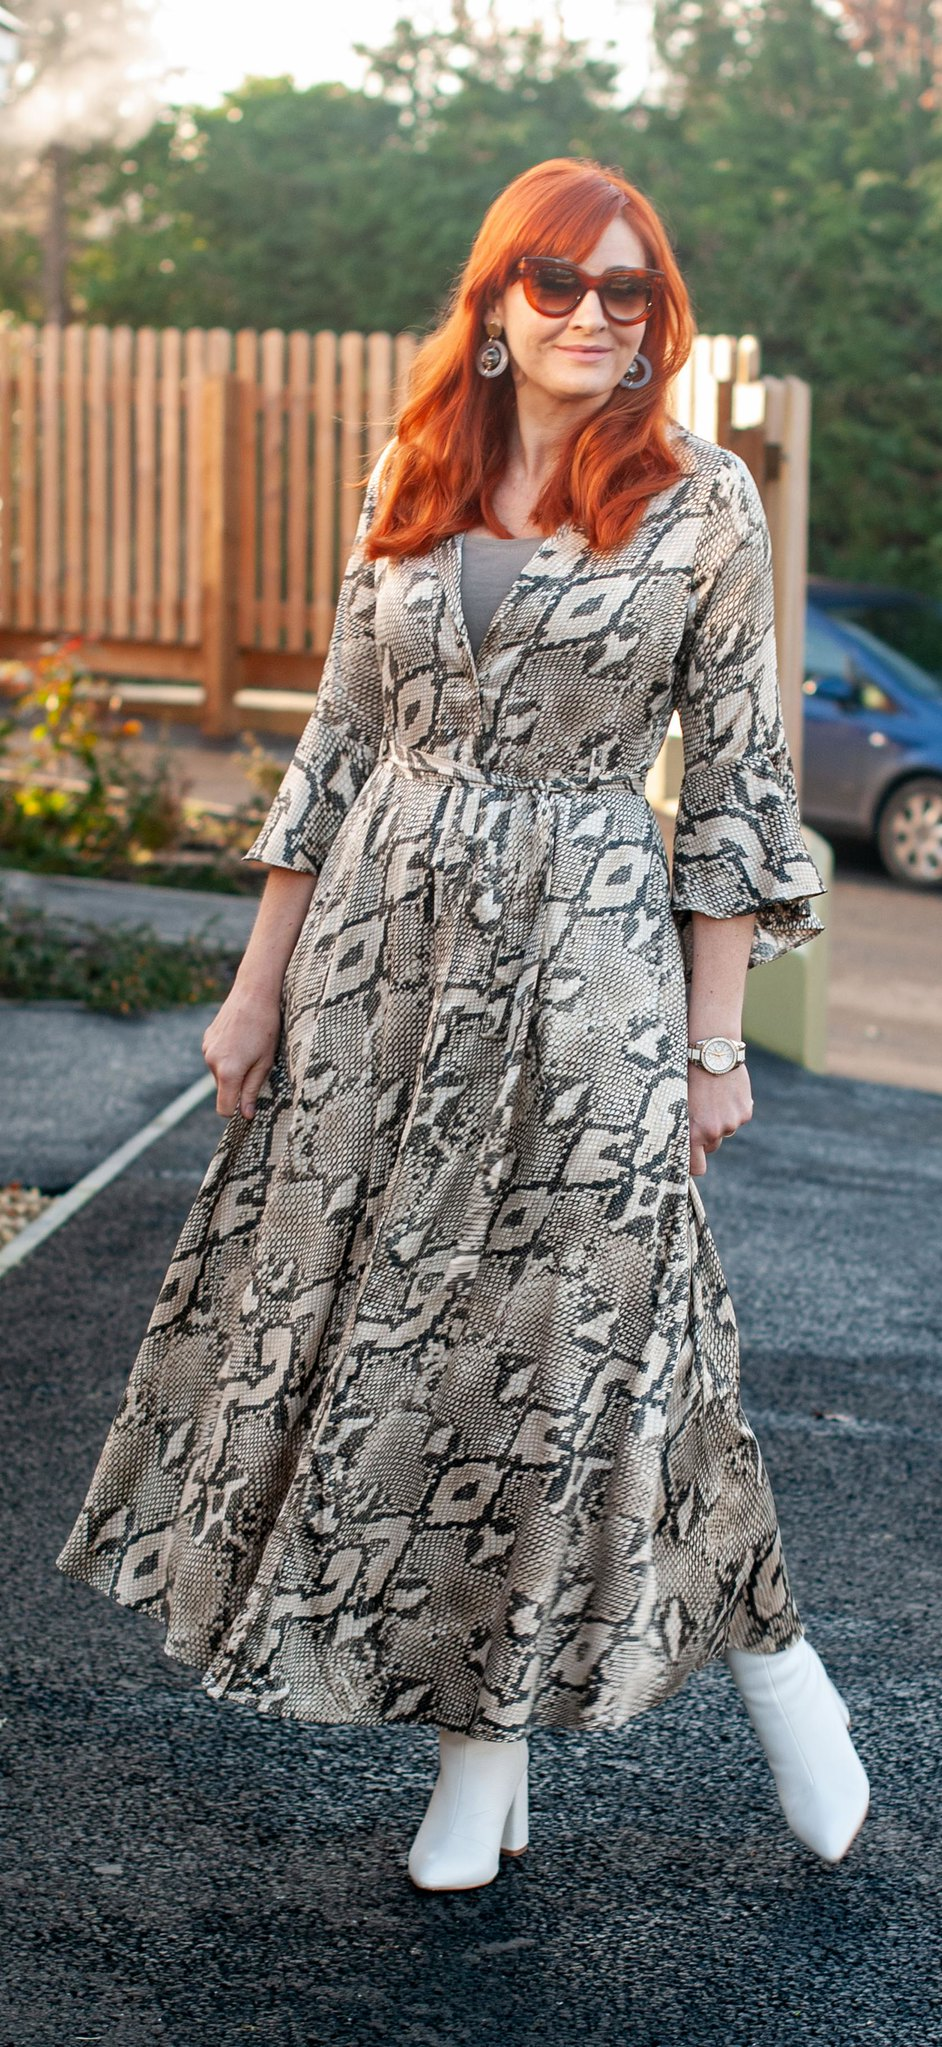 What to Wear for Christmas: A Snakeskin Maxi Dress With White Boots   Not Dressed As Lamb, over 40 style blog